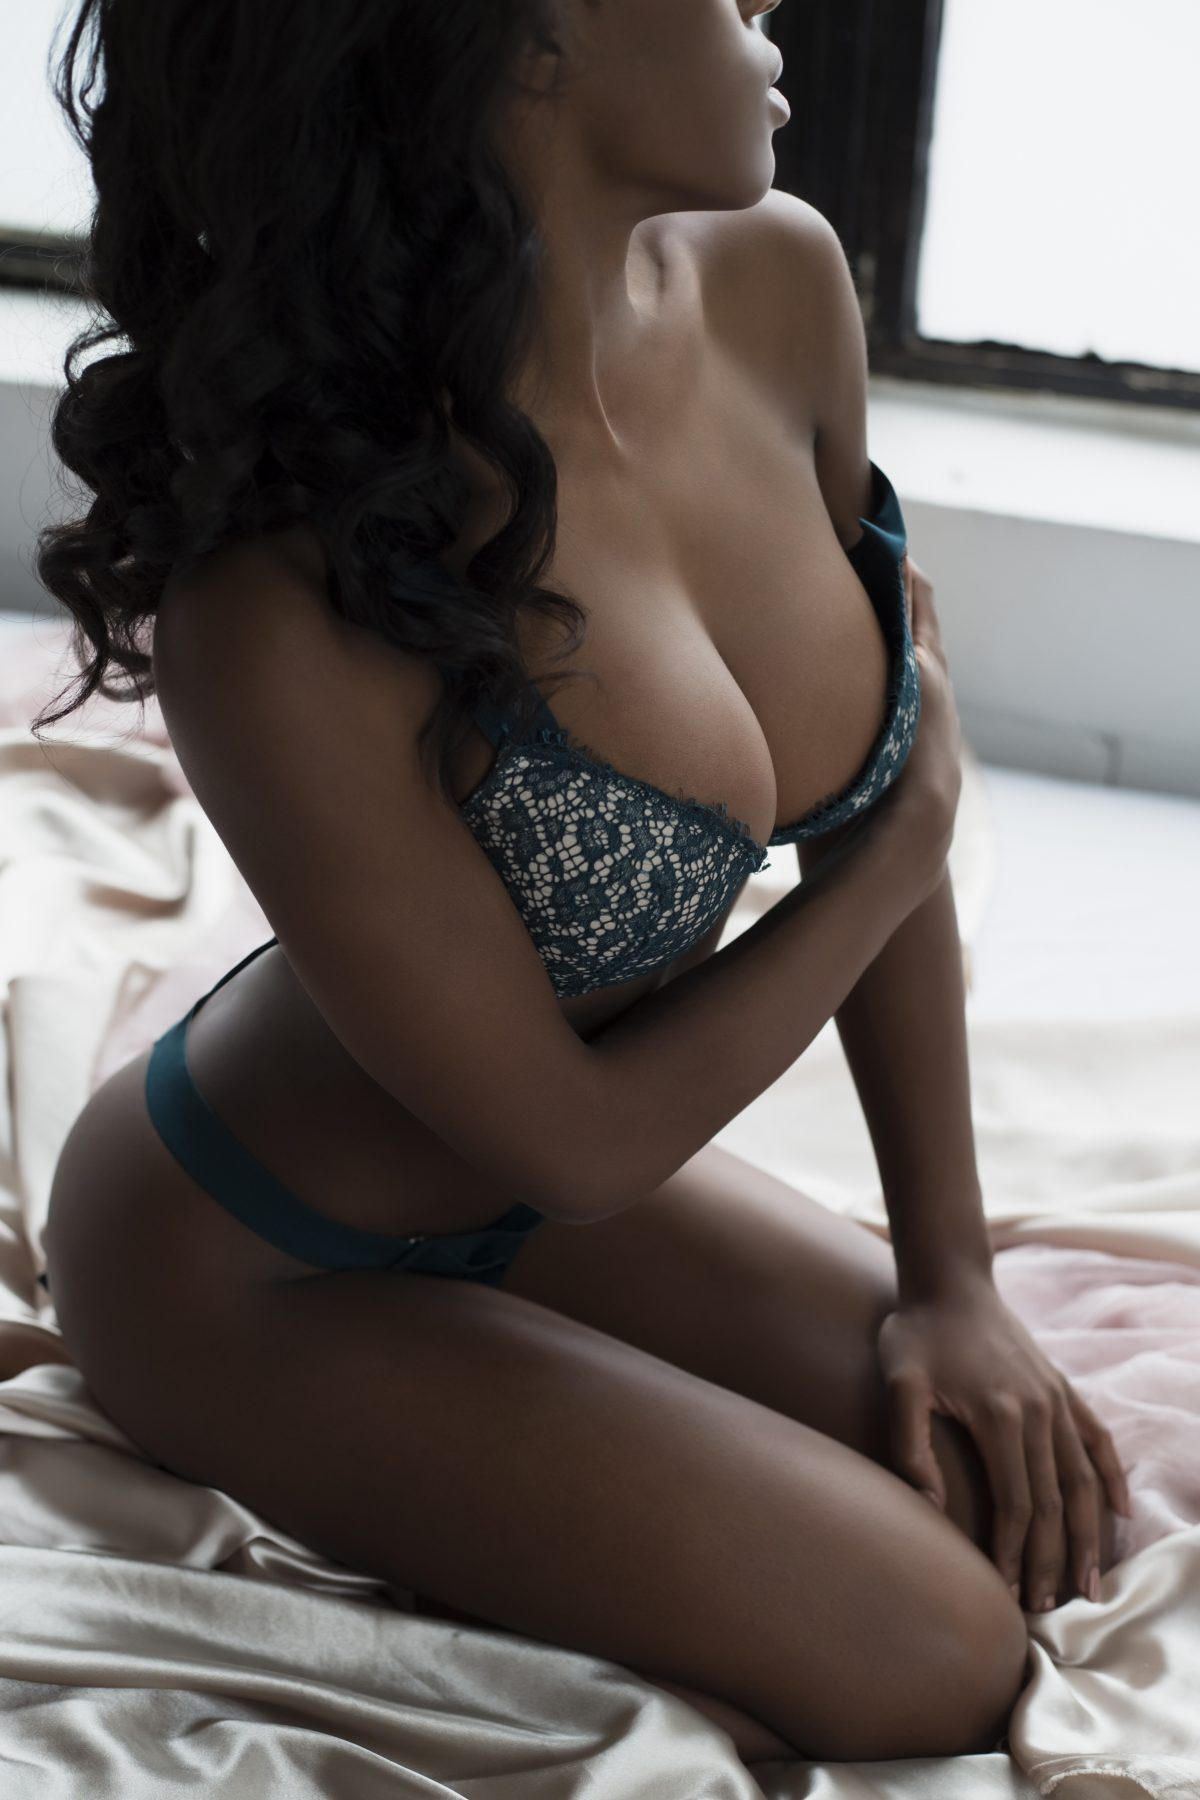 Toronto escorts companion upscale Vanessa Interests Duo Disability-friendly Non-smoking Age Mature Figure Slender Petite Breasts Natural Hair Other Brunette Ethnicity European Exotic Tattoos Large